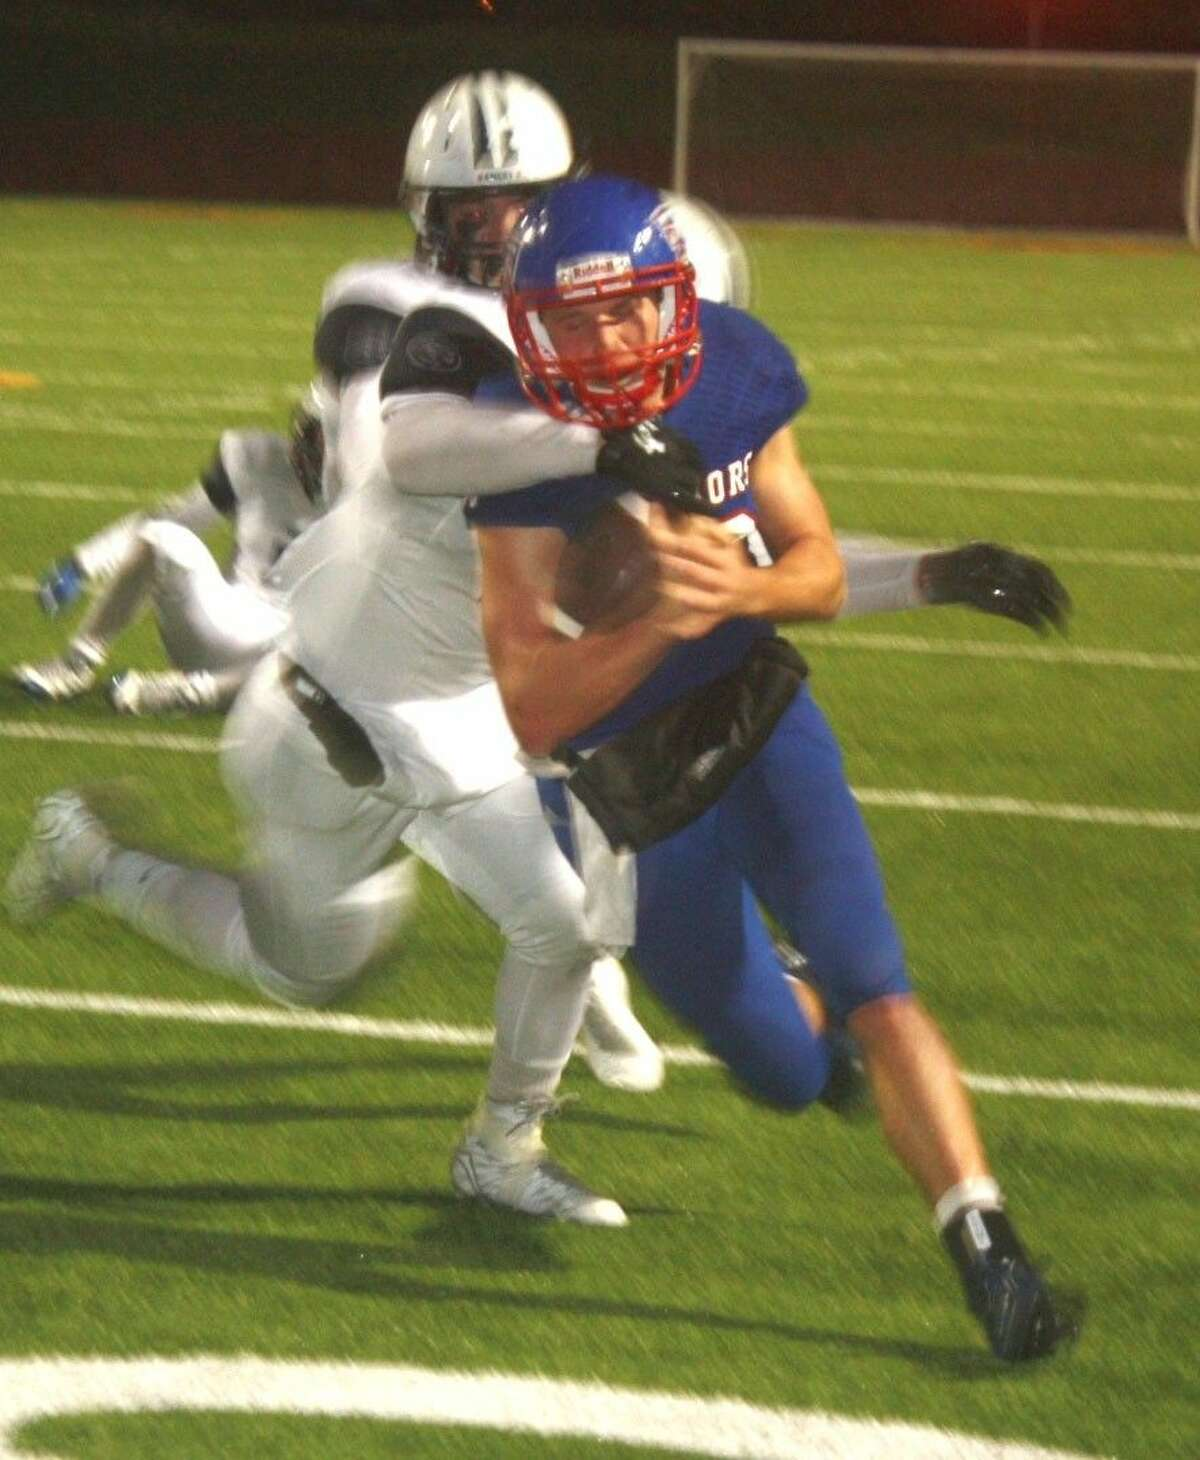 FBCA's Brett Houston finds some more tough yardage in the TAPPS state semifinal Division I 6-man game at Deer Park High School's Clyde Abshier Stadium last Saturday night. Houston, who will be up for All-State honors based on his 50-plus touchdowns this season, scored all of the Warriors TDs in the 40-30 loss to Emery.